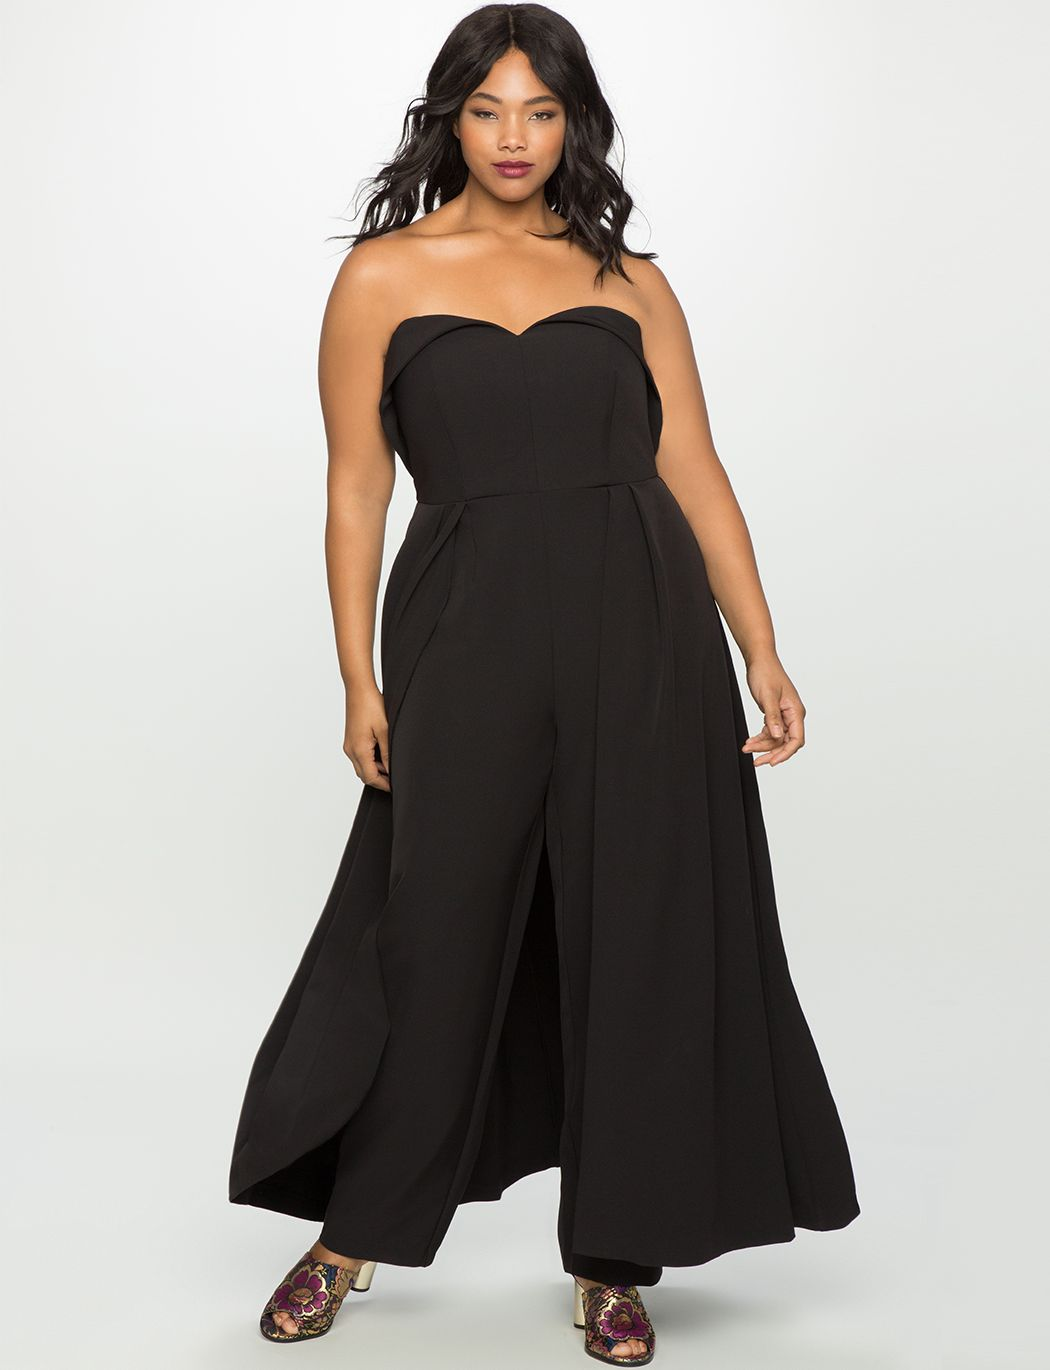 22++ Plus size rompers for wedding ideas in 2021